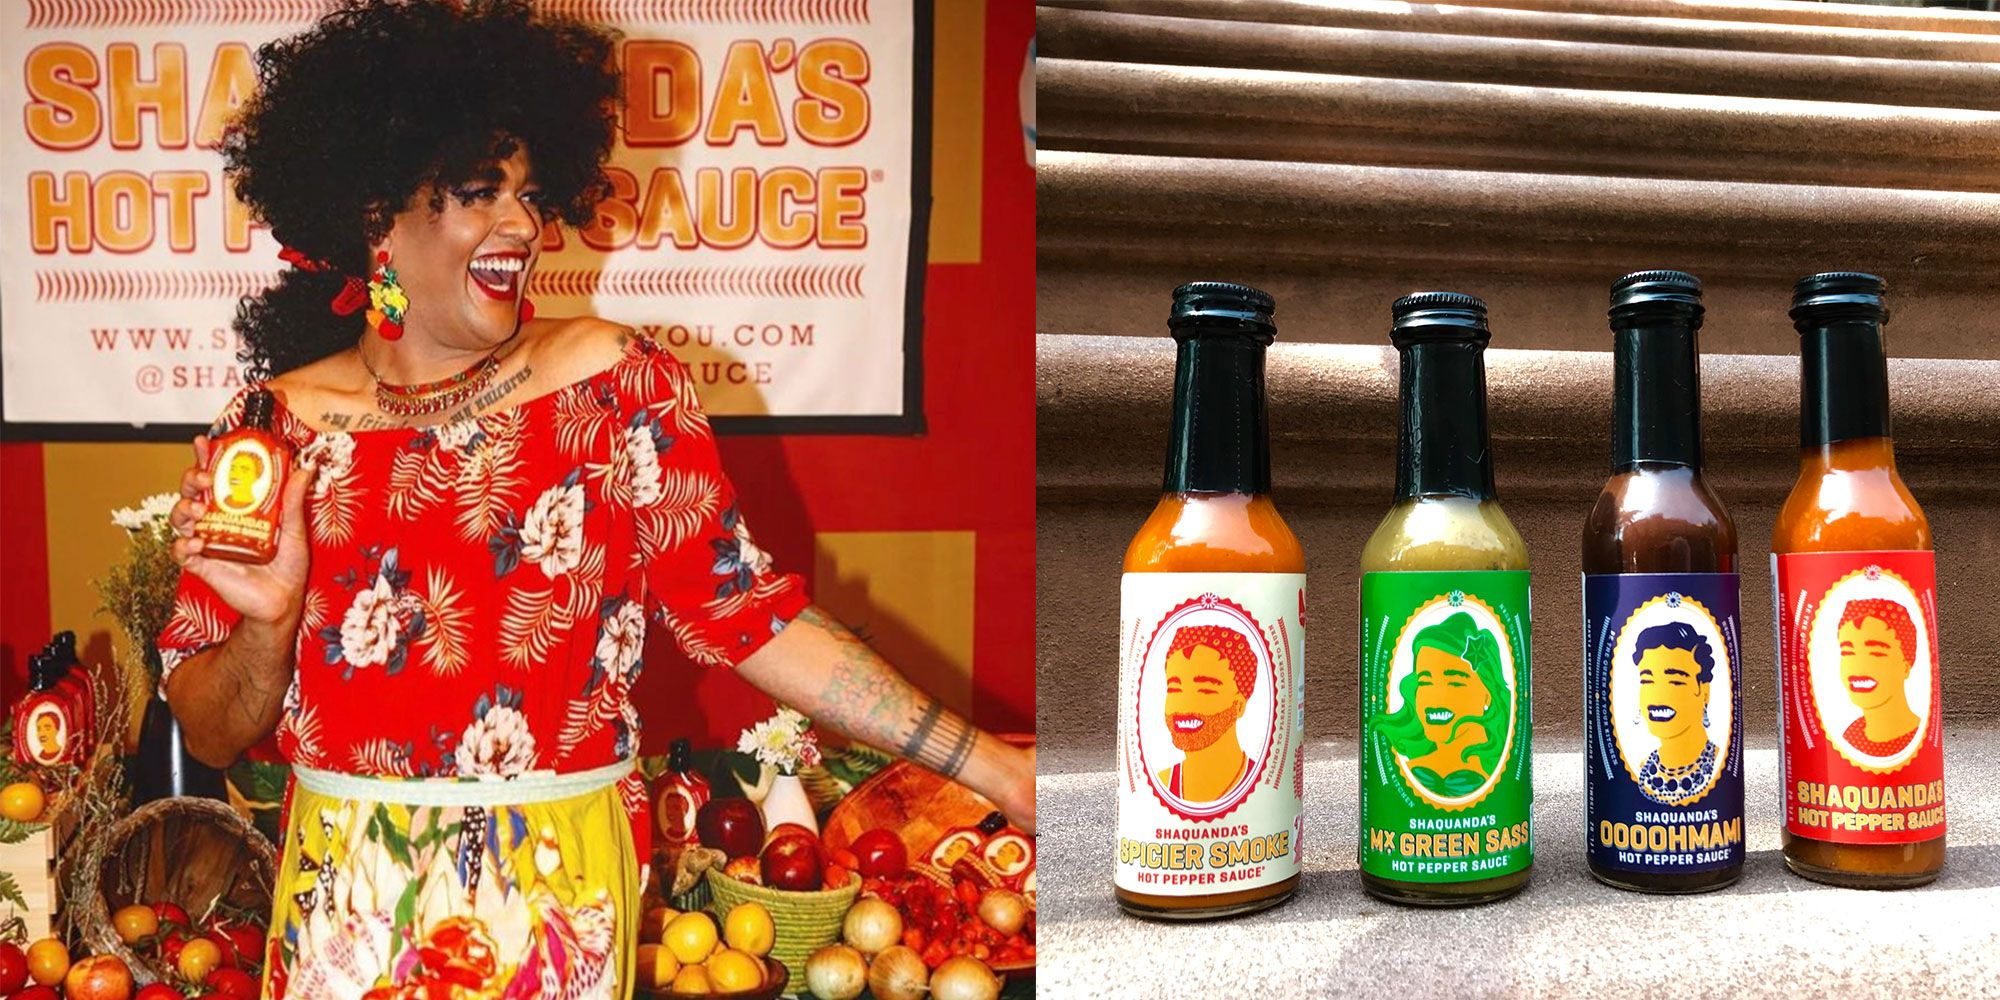 How This New York Drag Queen Launched A Hot Sauce Mini-Empire